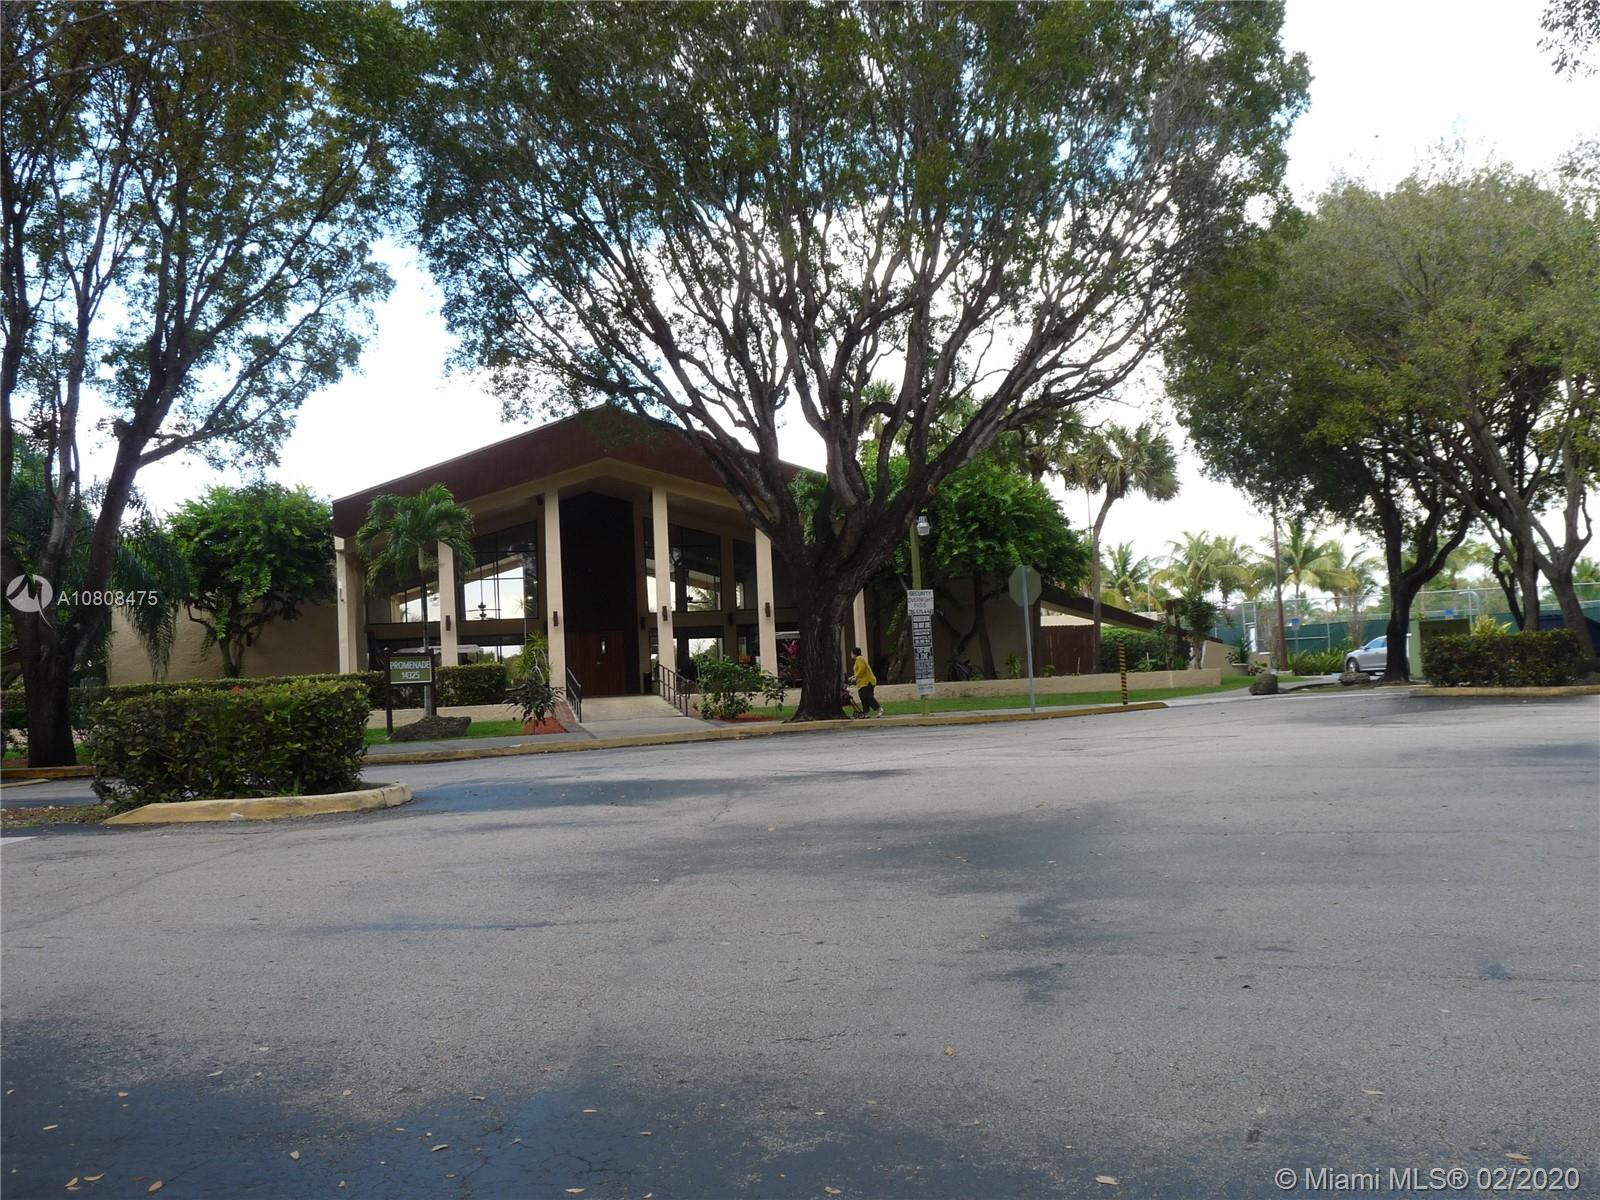 ONE OF THE BIGGEST UNIT 2/2 AT PROMENADE , CENTRALLY LOCATED , CLOSE TO RESTAURANTS, SCHOOLS, AND THE FL TURNPIKE. NICE SIZE ROOMS, EXCELLENT FLOOR PLAN. 2 DOORS ENTRANCE IS A PLUS.  GREAT FOR INVESTORS. BY APPOINTMENTS ONLY.. PROMENADE COMMUNITY HAS 2 POOLS, TENNIS COURTS, LAKE VIEW AND SECURITY PATROL. ASSOCIATION MEETS ONCE A MONTH , HOWEVER; RUSH APPLICATION IS AVAILABLE UPON REQUESTED.